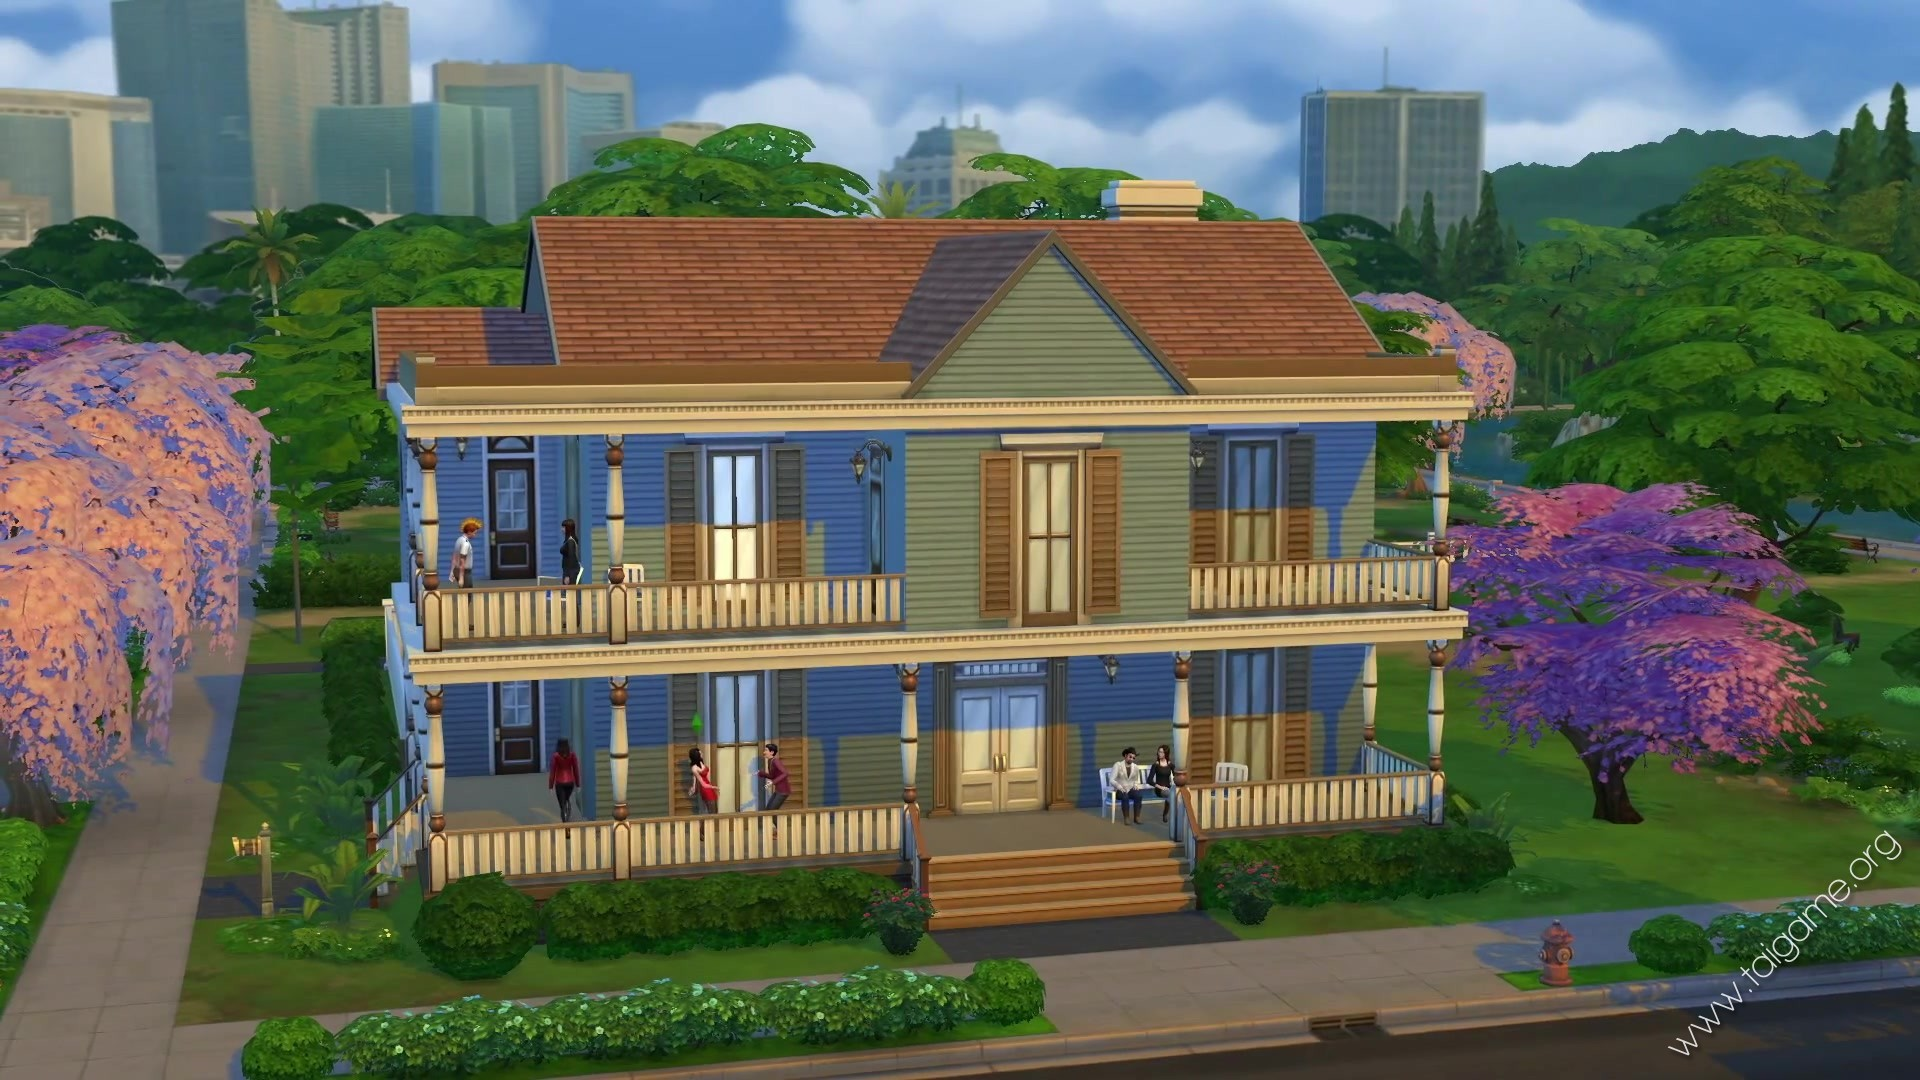 The sims 4 deluxe edition download free full games for Creek house